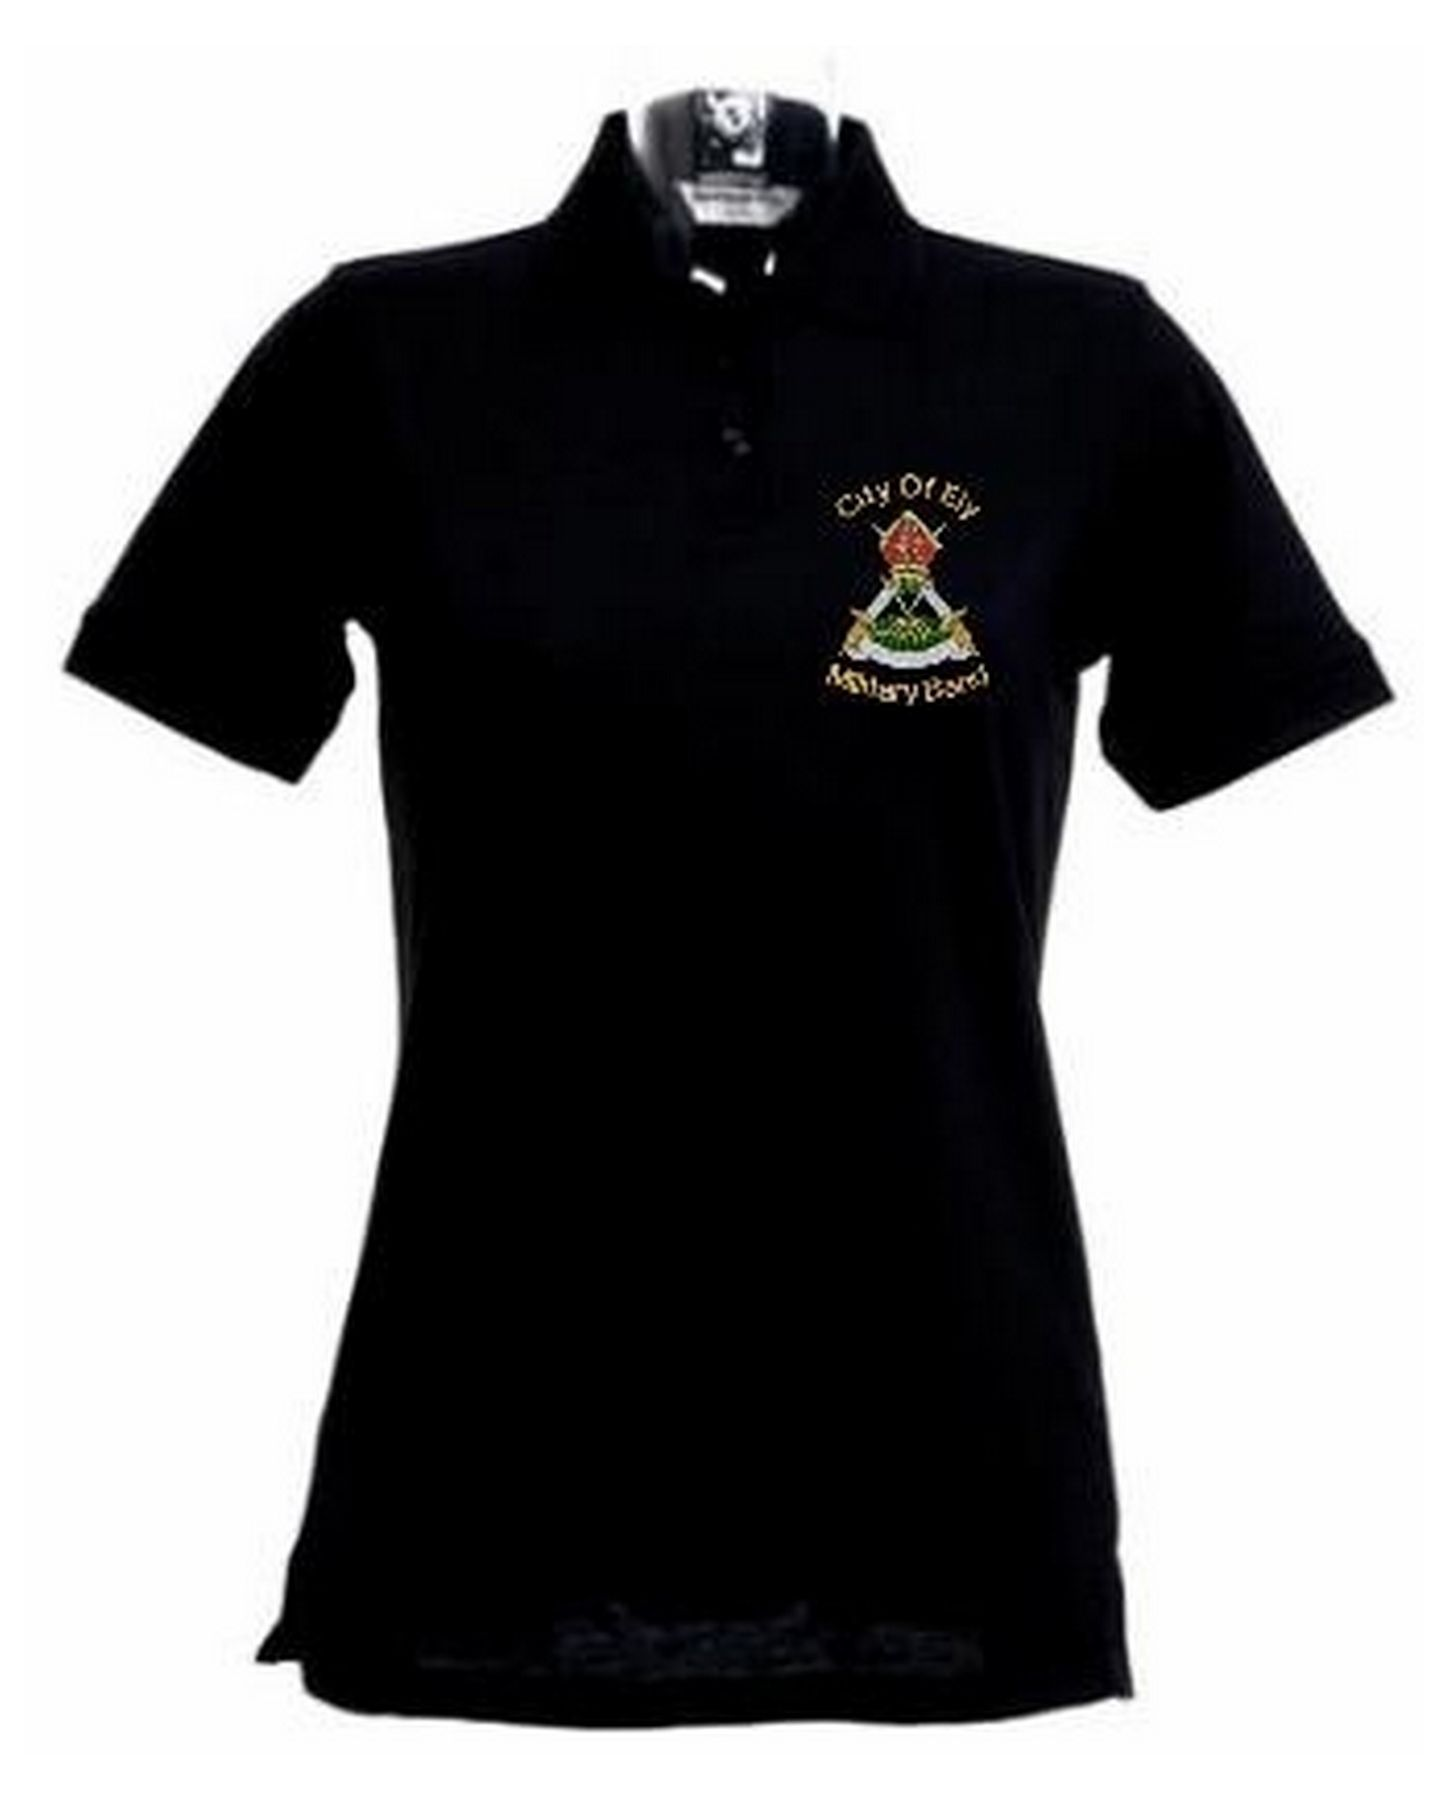 Ely Military Band – Ladies Polo Shirt